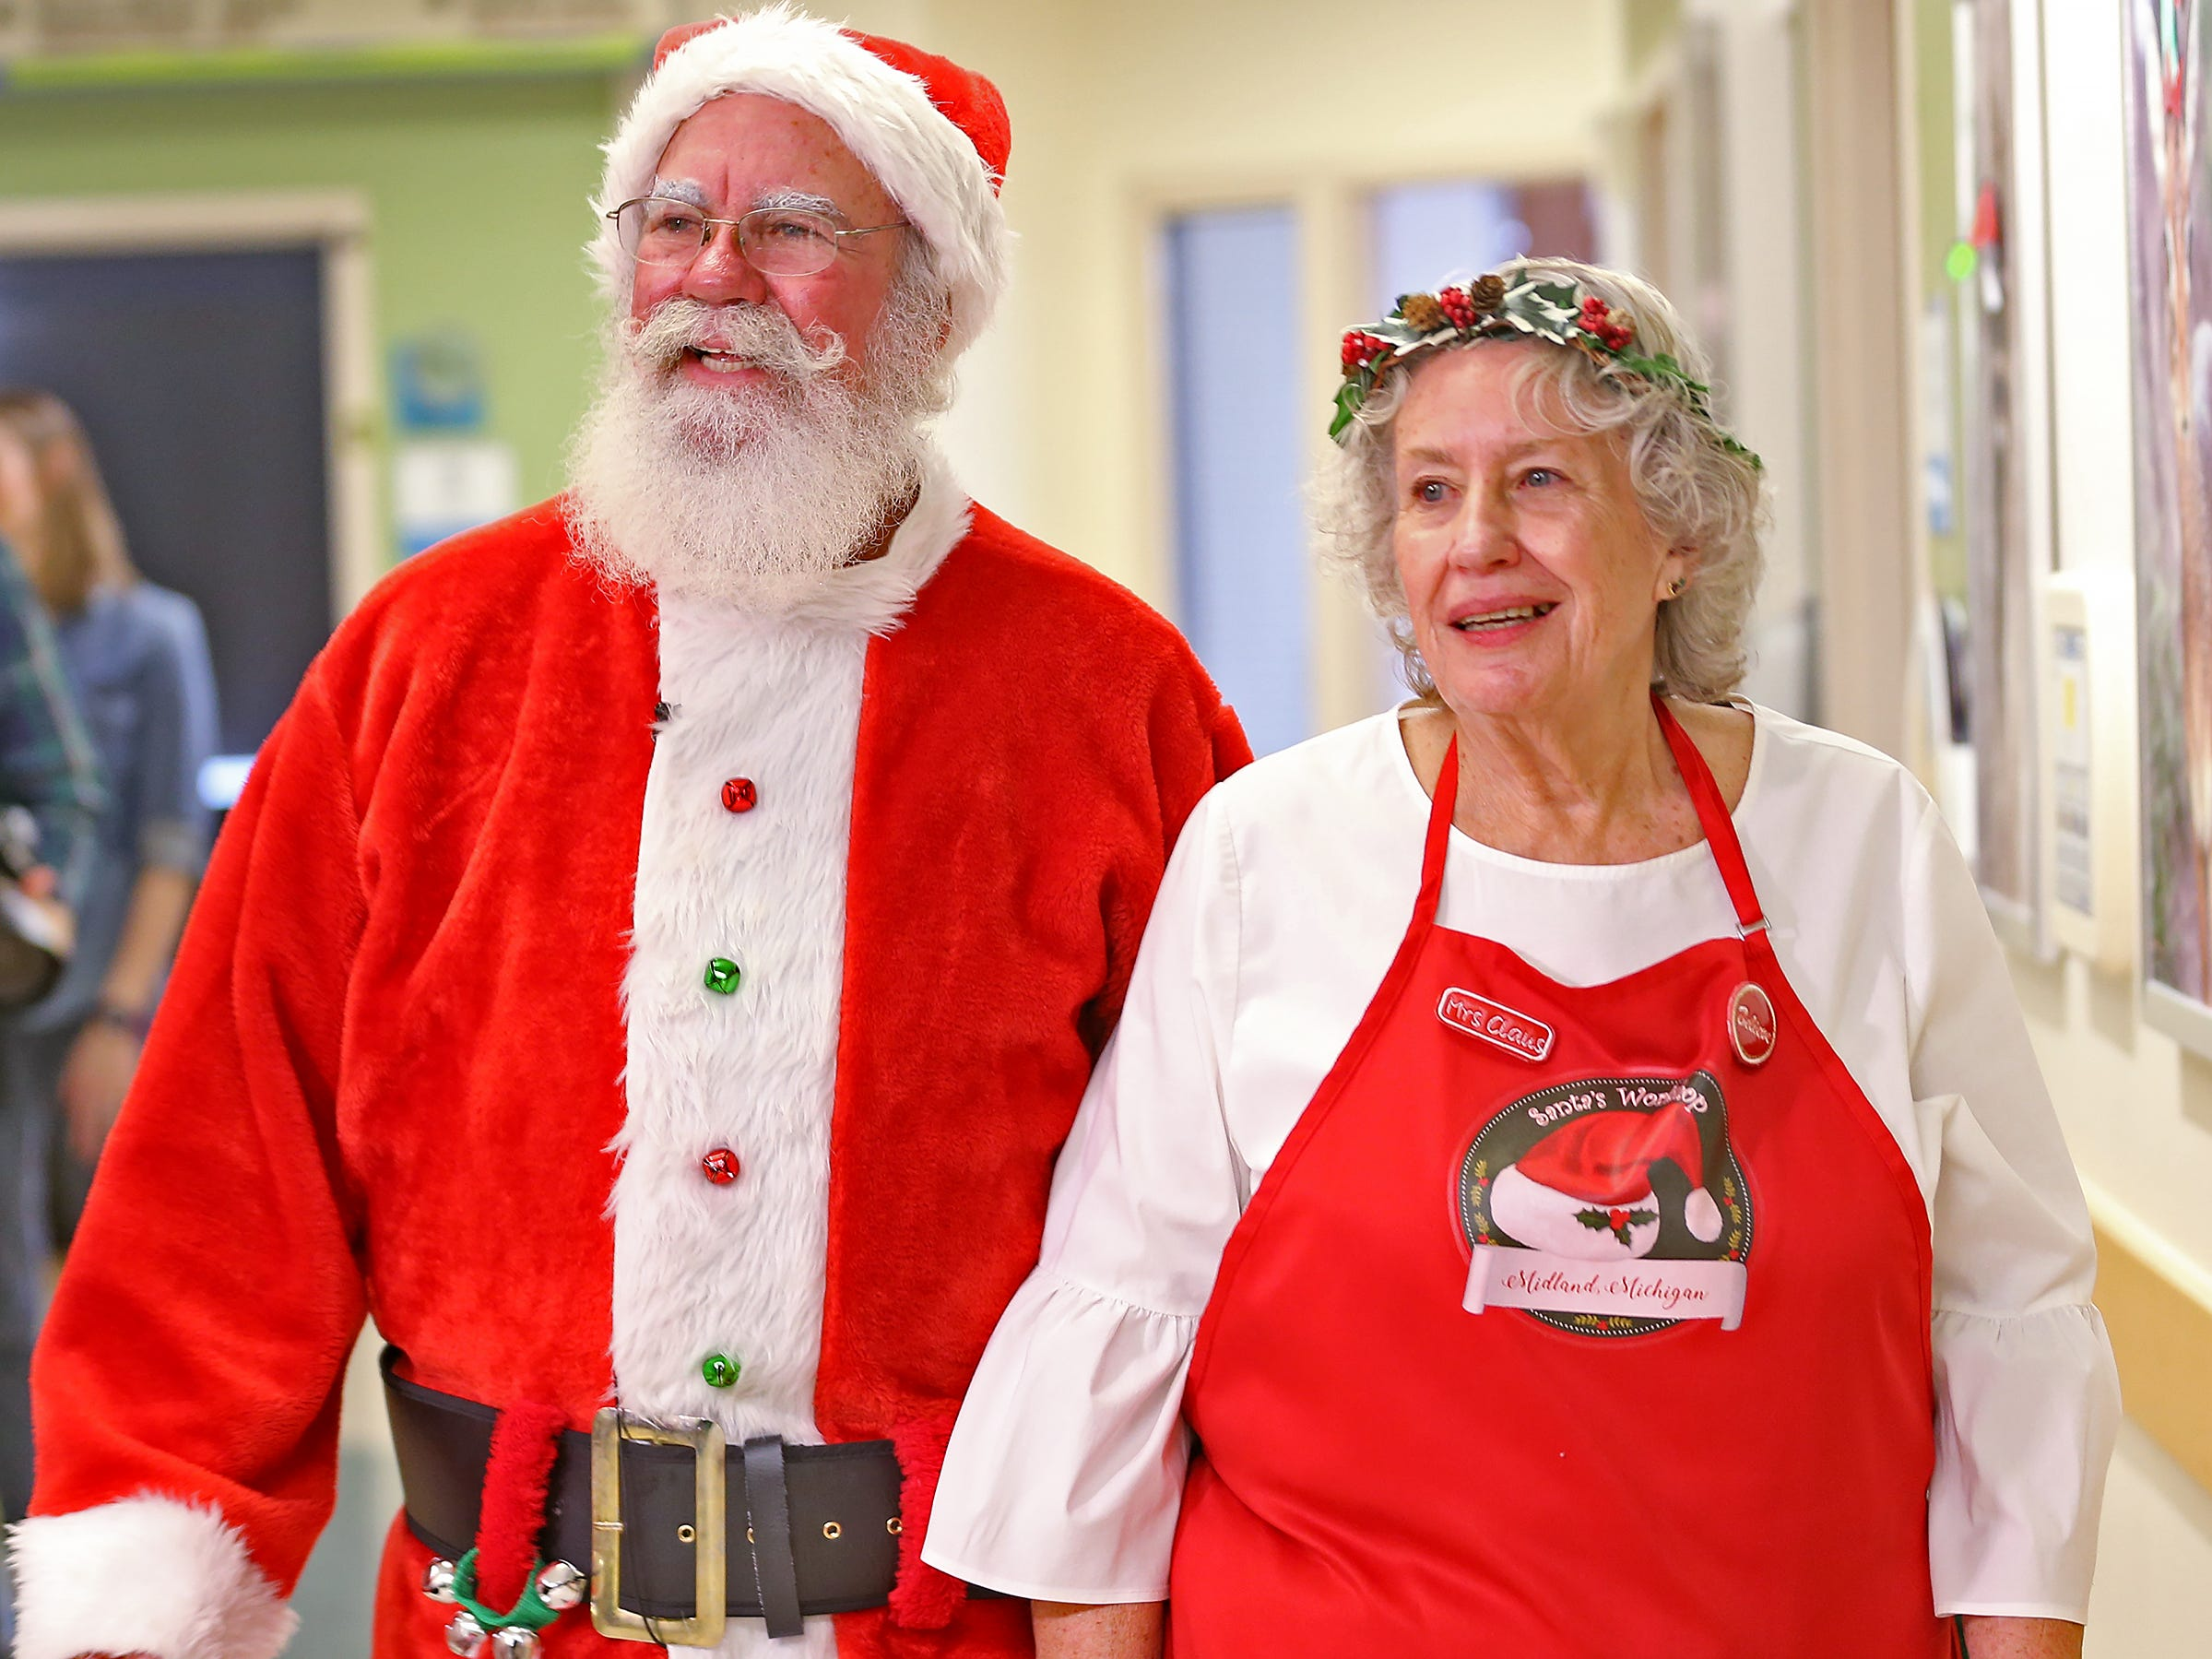 Santa and Mrs. Claus, aka Bill and Kathy Armstrong, visit with kids at Riley Children's Health, Thursday, Dec. 13, 2018.